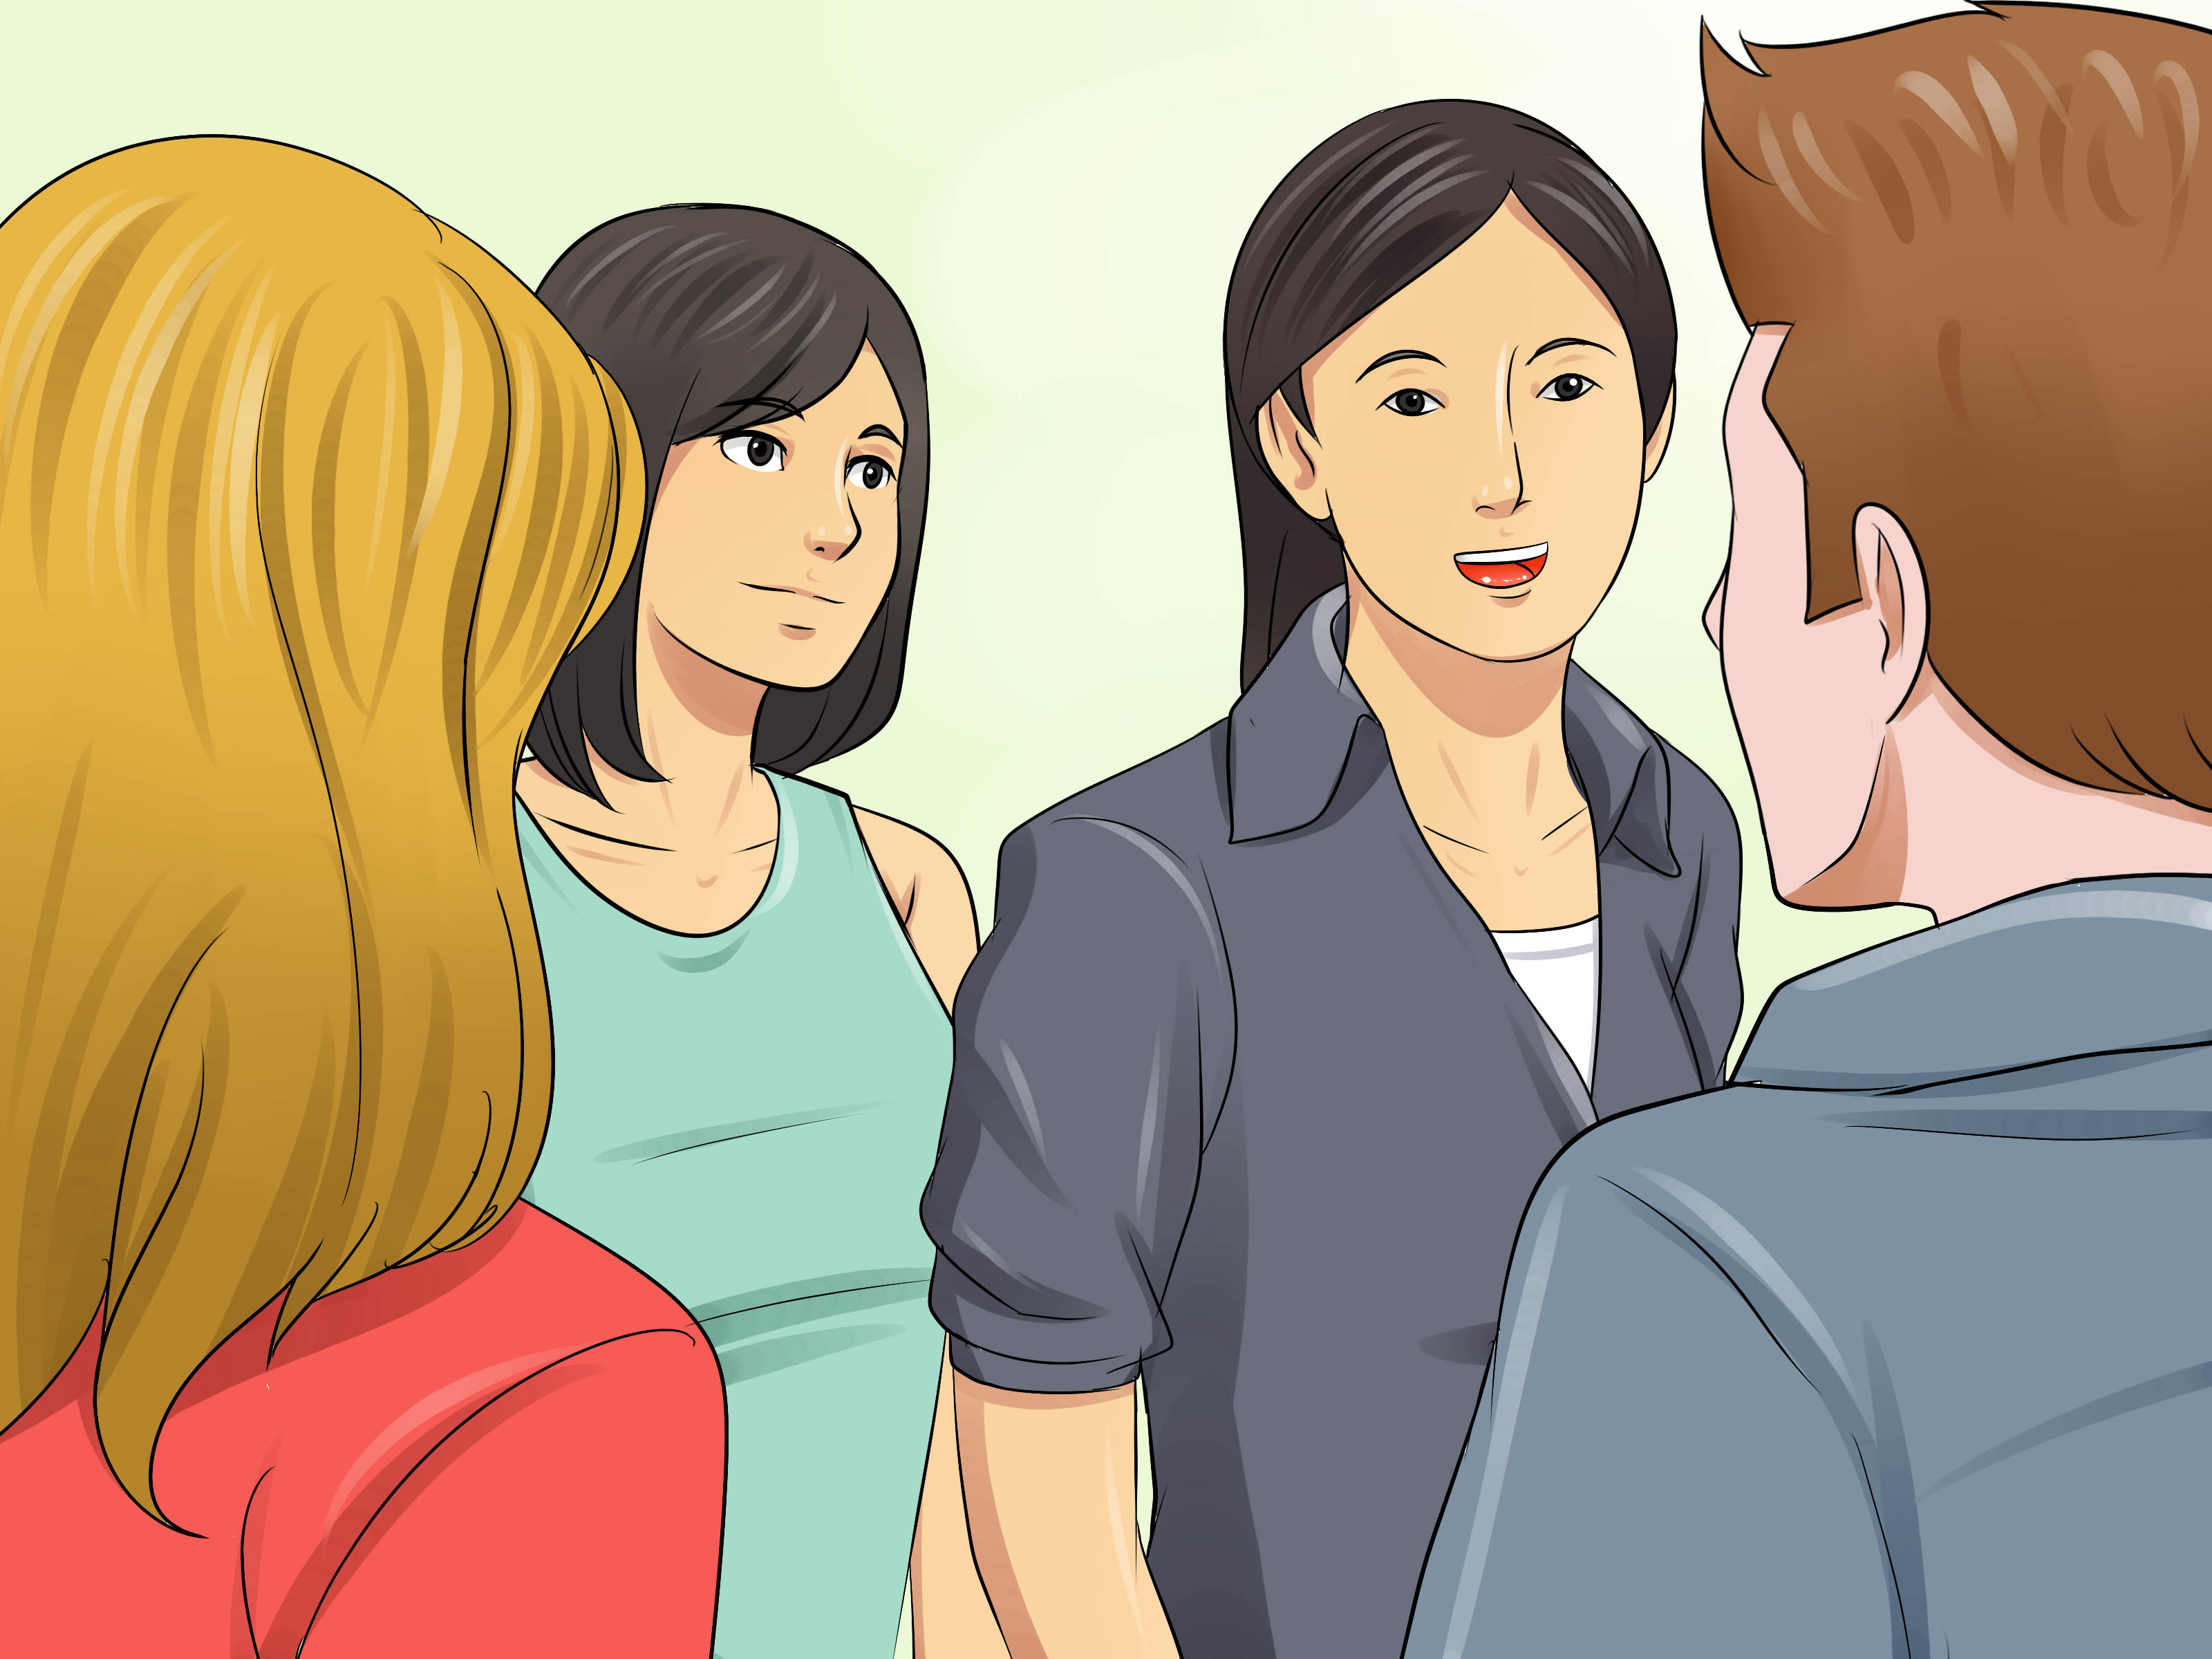 How To Make New Friends In High School With Pictures